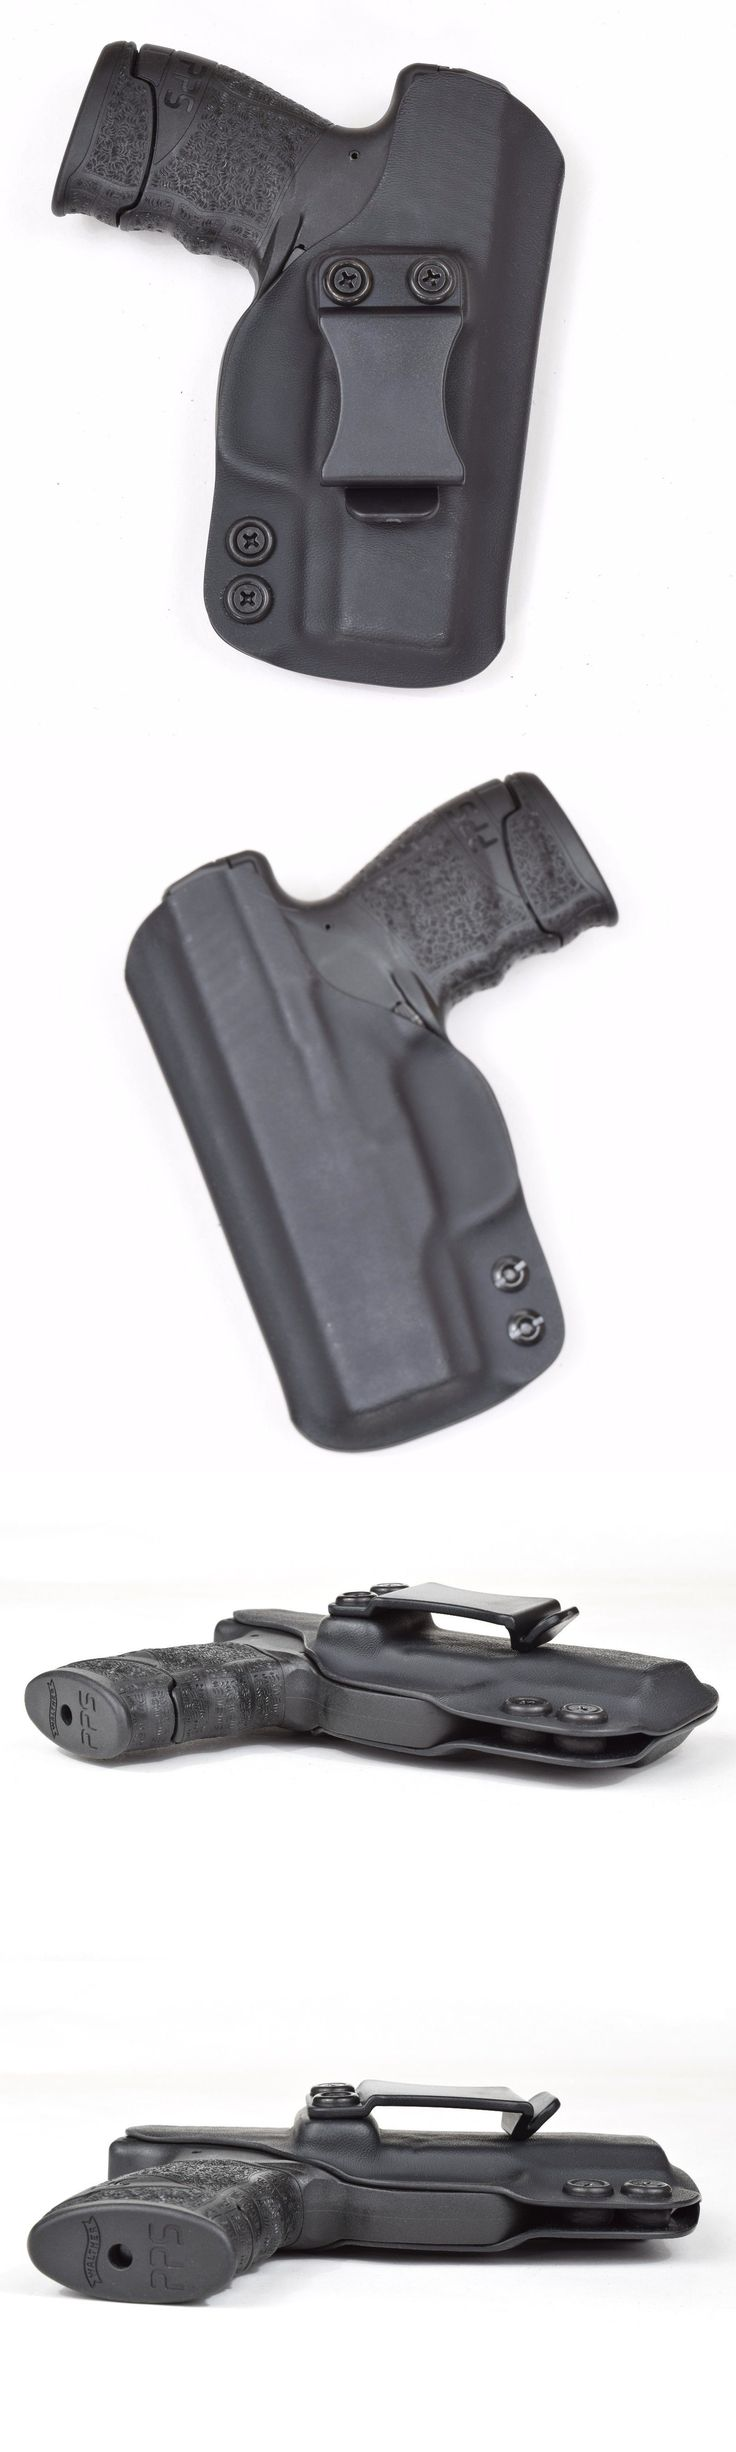 Holsters 177885: Badger State Holsters- Walther Pps M2 Iwb Black Custom Kydex Holster -> BUY IT NOW ONLY: $34.99 on eBay!